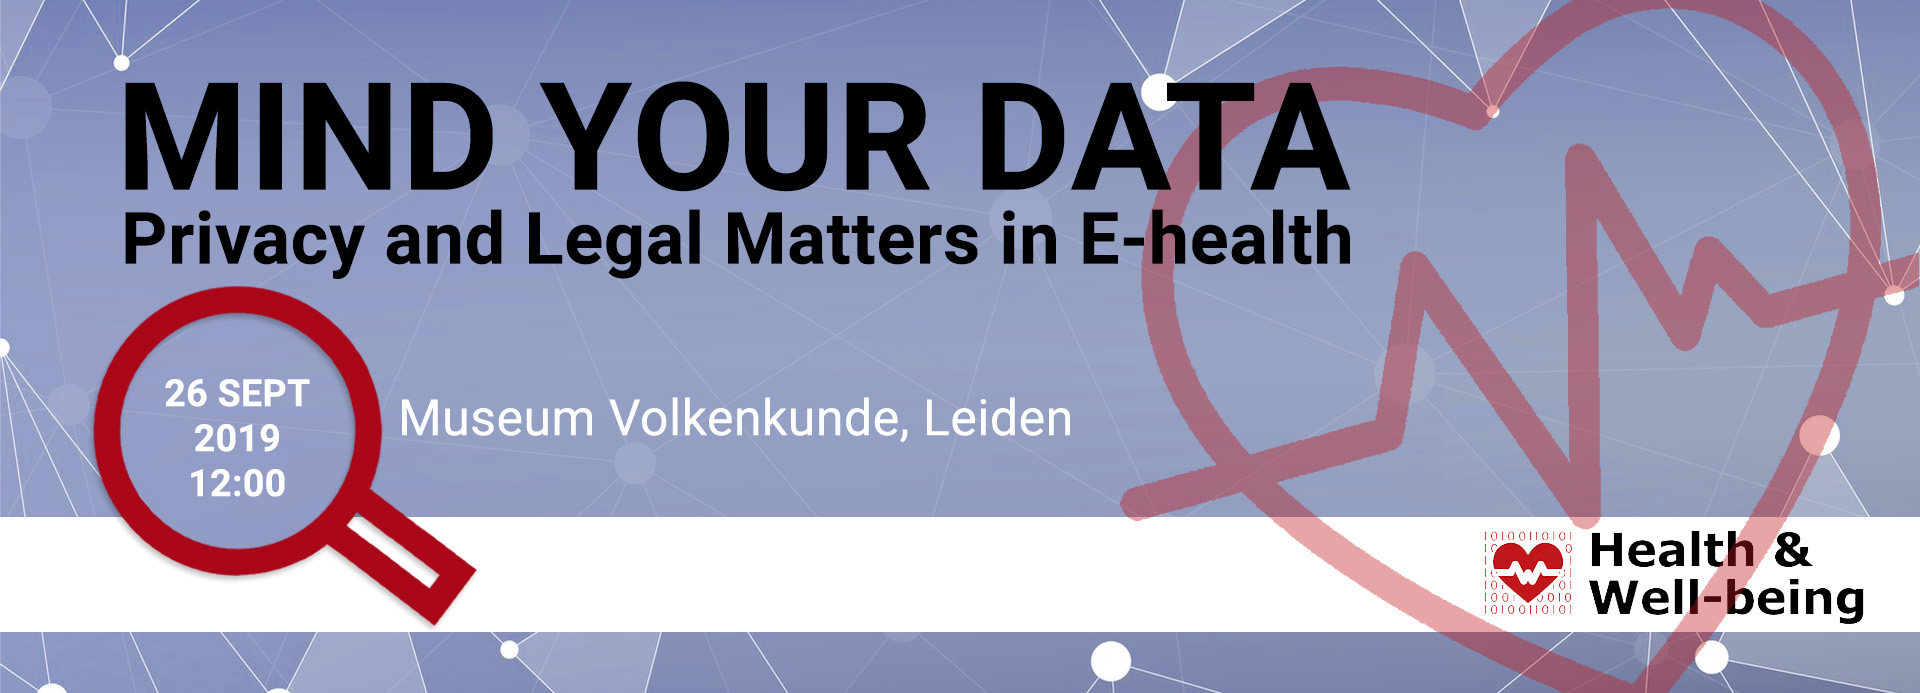 26 Sep: E-Health conference on Privacy and Legal Matters